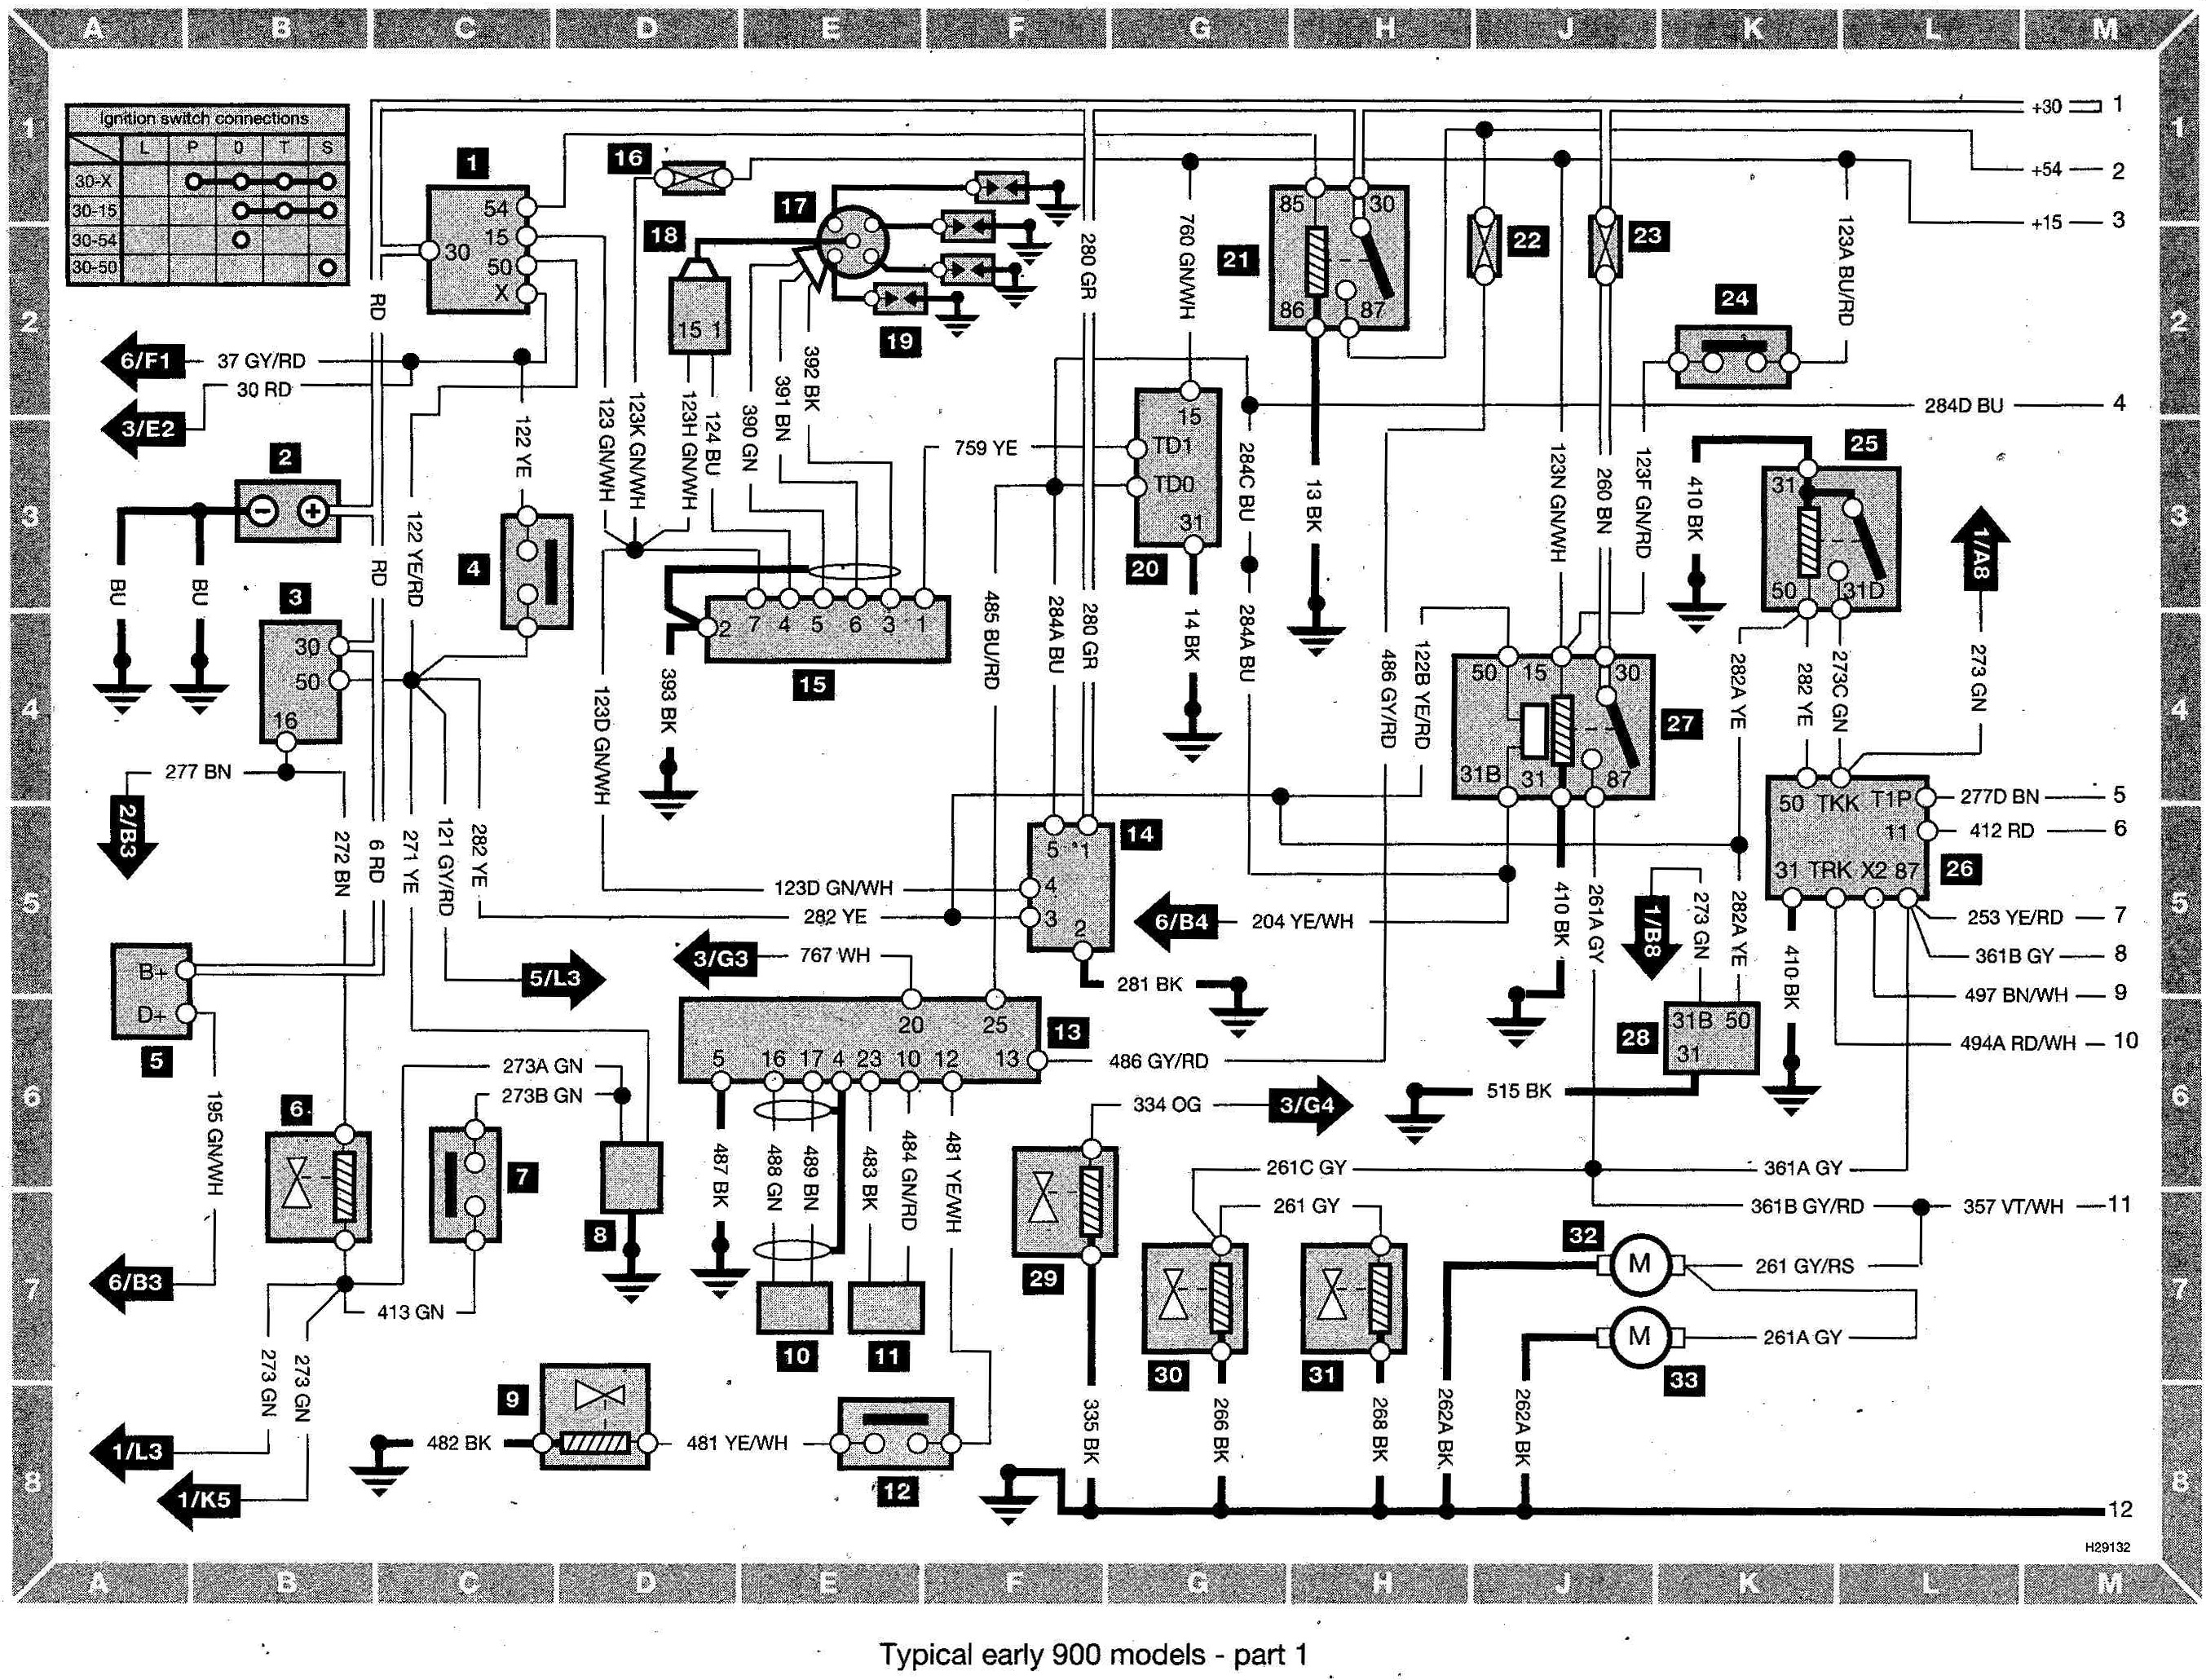 1995 Saab 900 Wiring Diagram Electrical Schematics 1997 Nissan Maxima Alarm Amplifier 2004 9 3 Speaker Wire